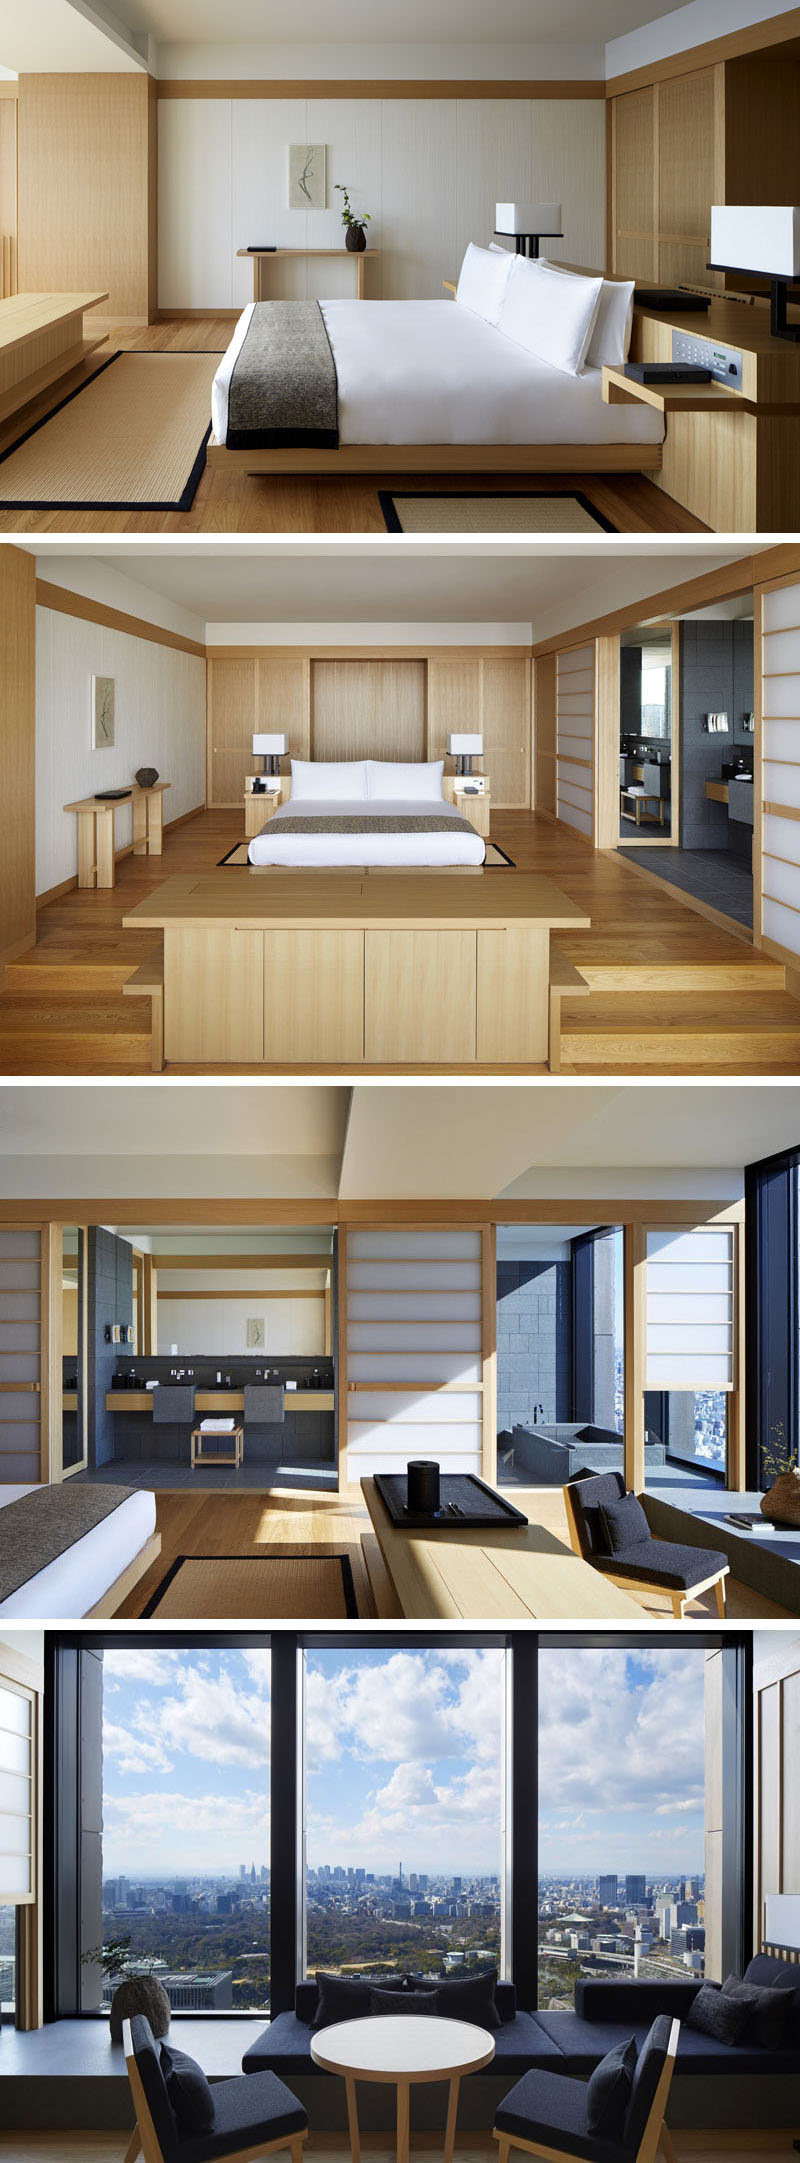 Howto mix contemporary interior design with elements of Japanese culture CONTEMPORIST - Glean The Secrets Of Japanese Interior Design All About Japan